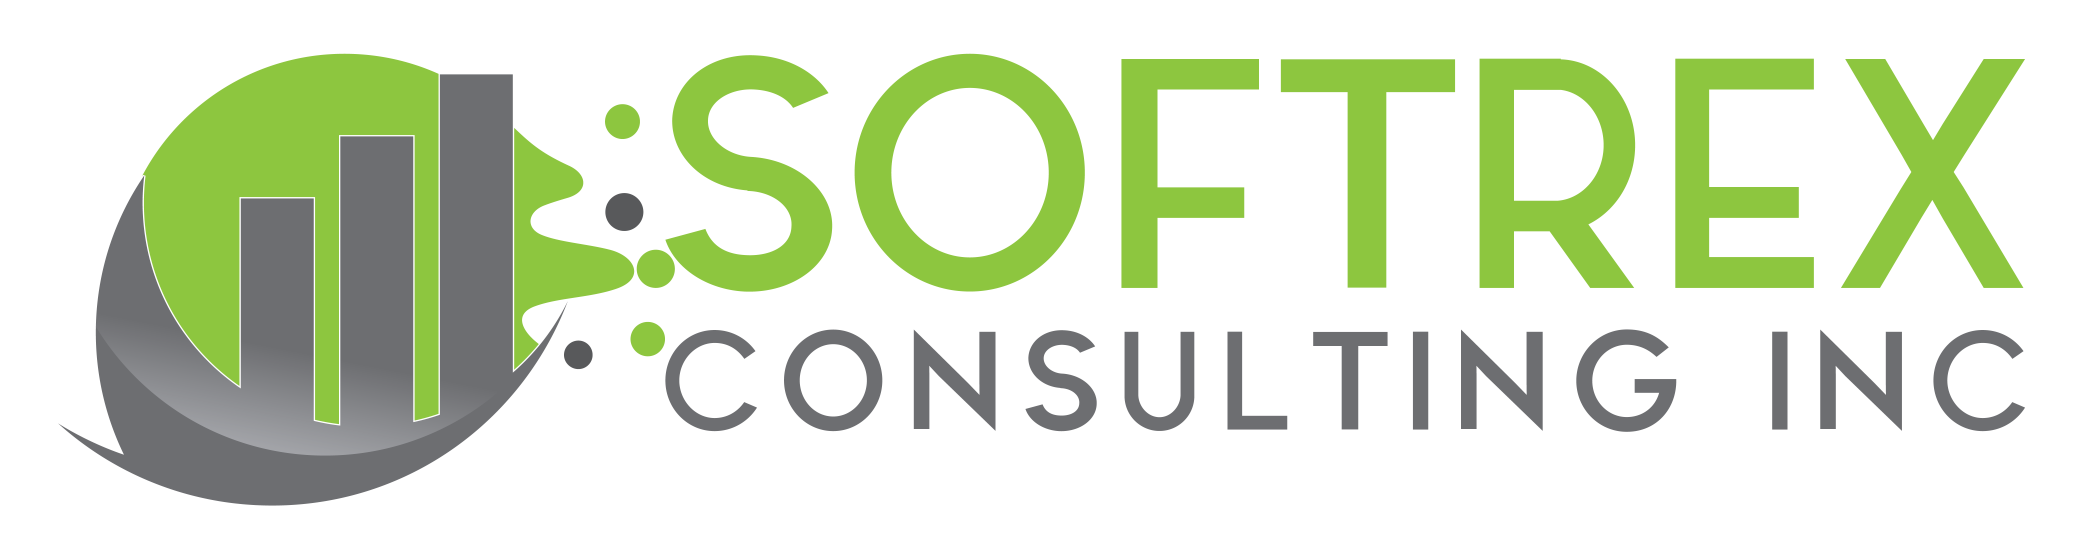 SoftRex Consulting